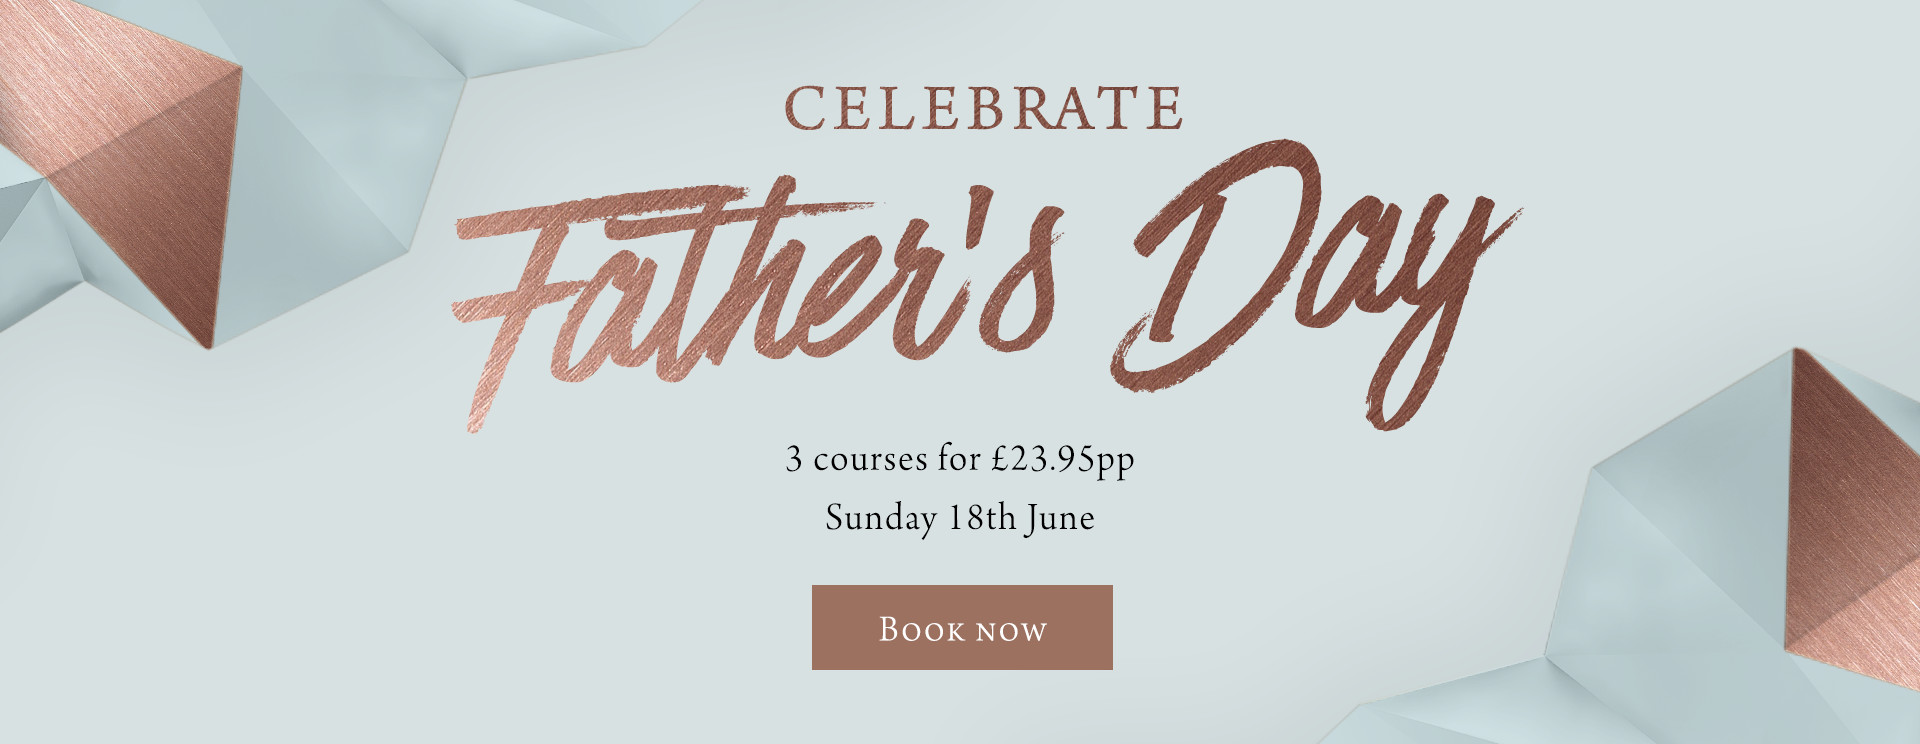 Father's Day at Caversham Rose - Book now